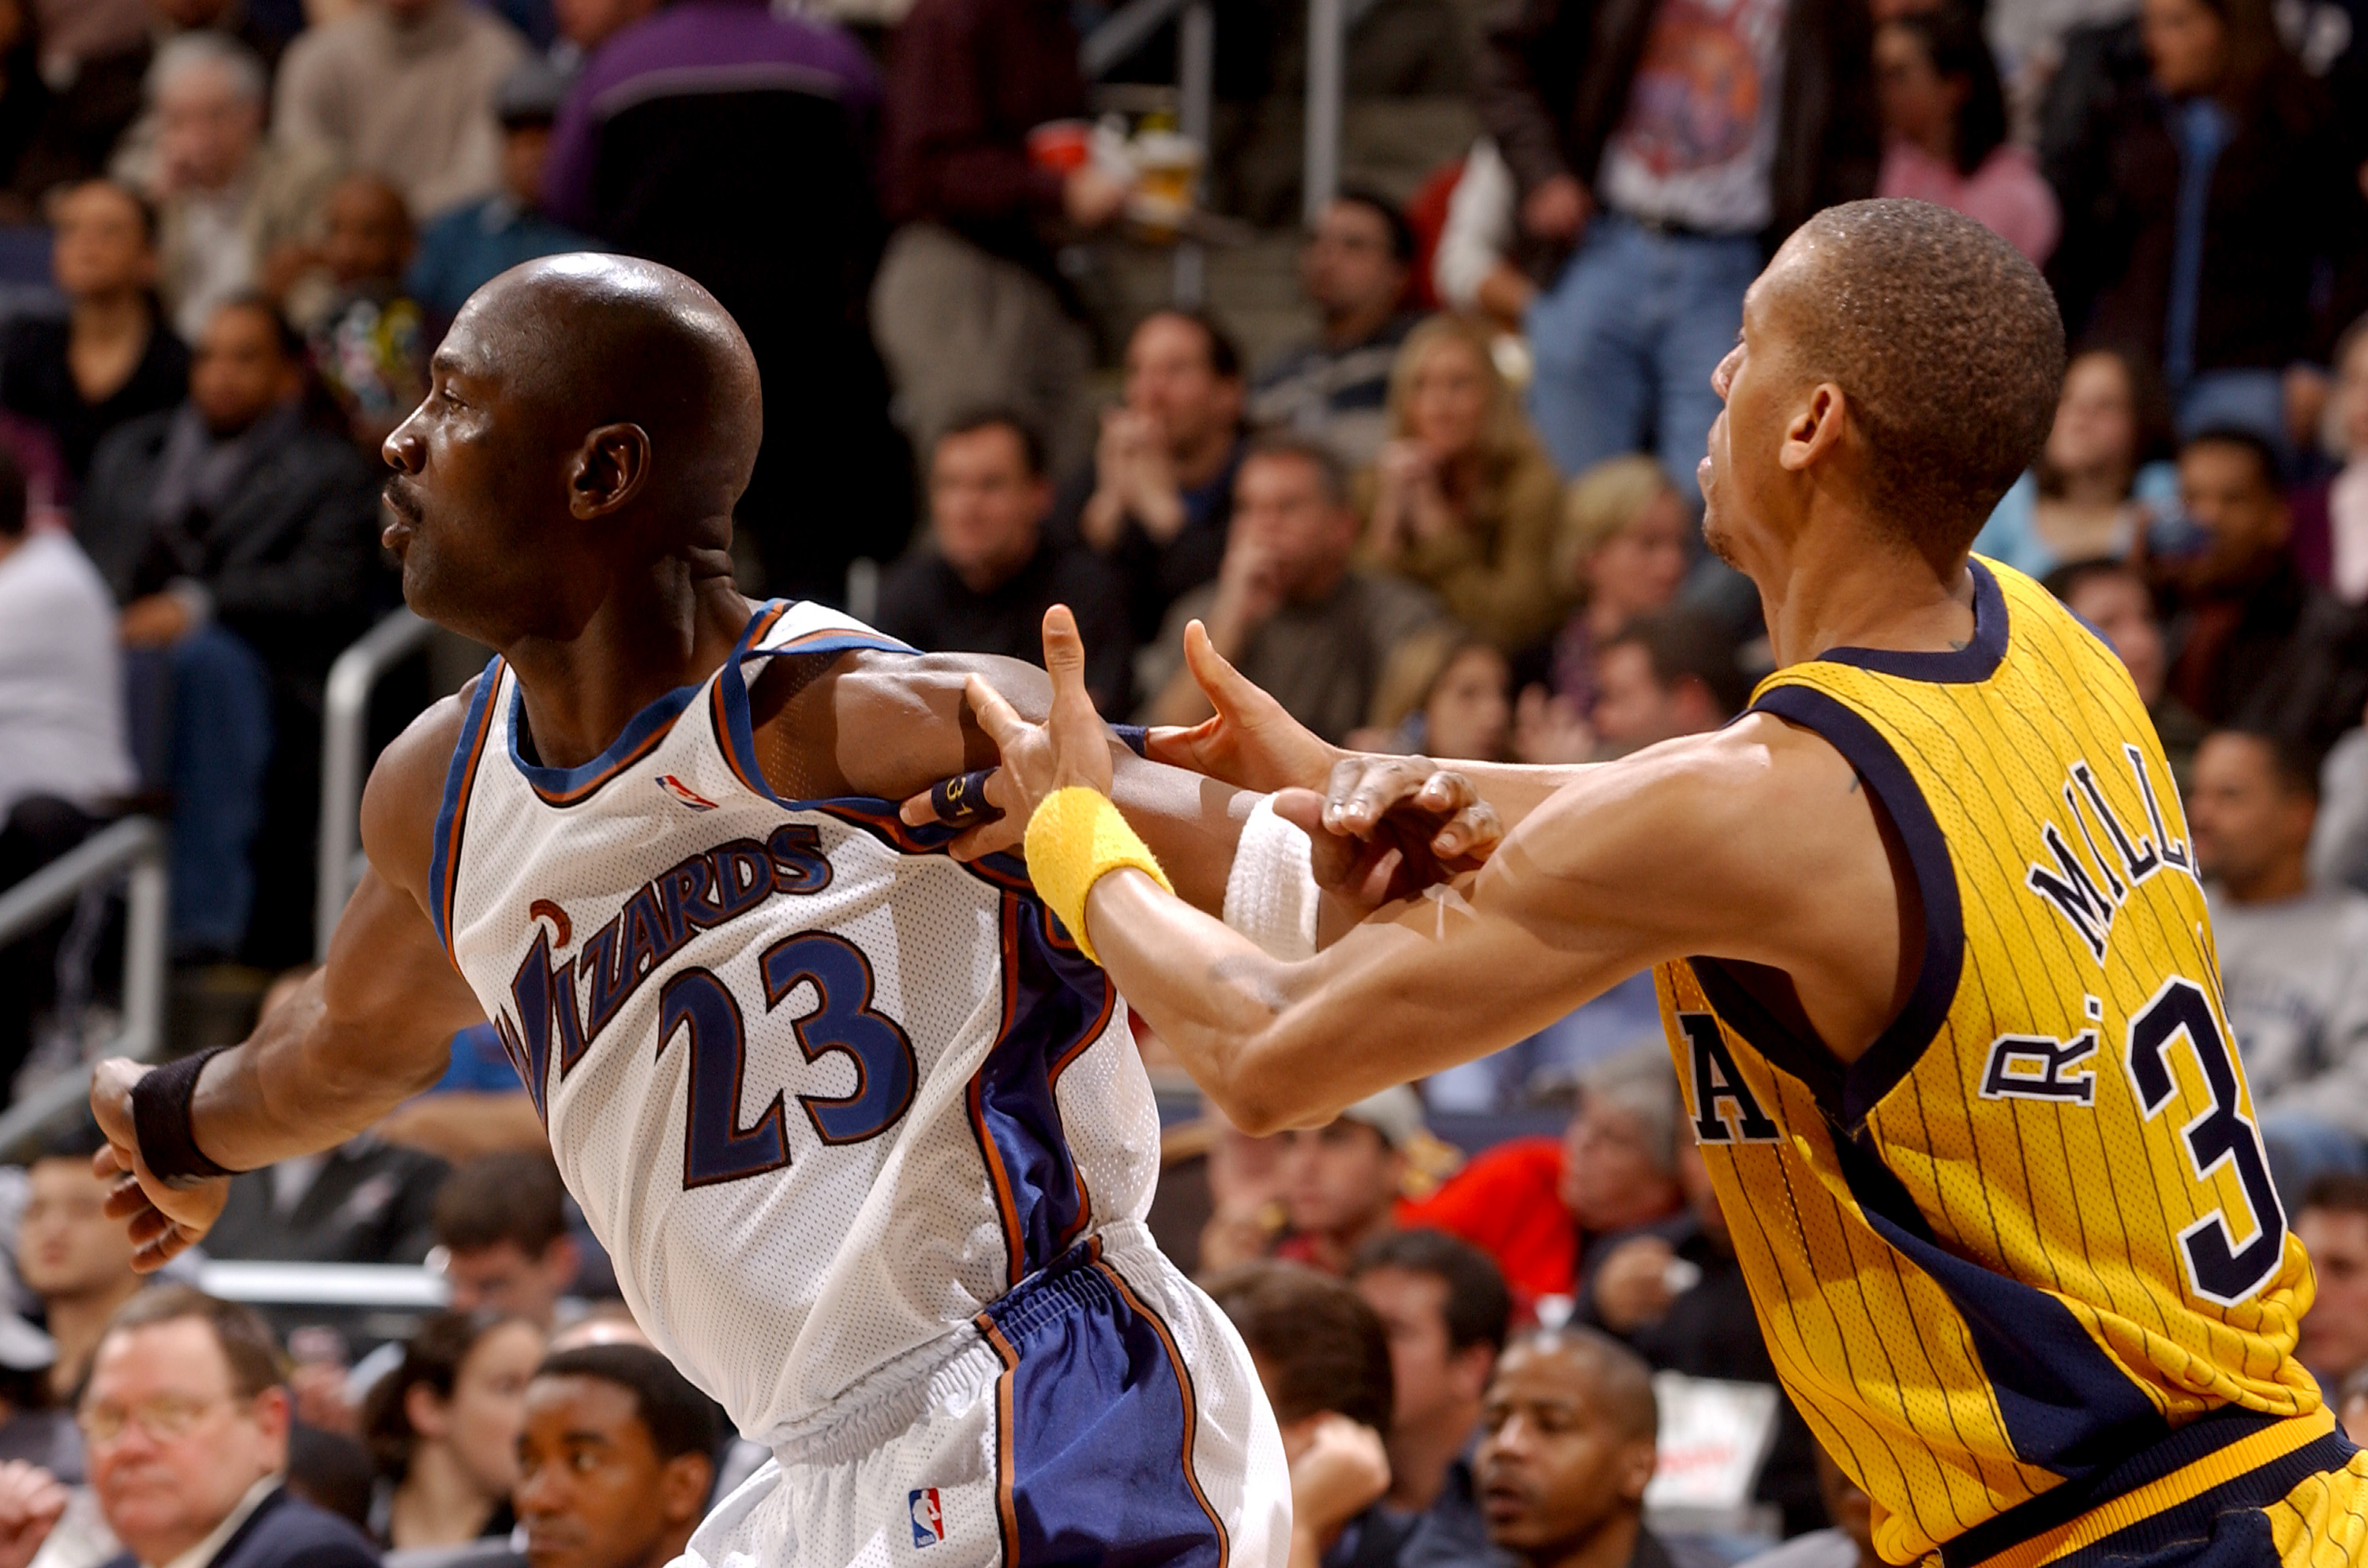 Reggie Miller guards Michael Jordan during an NBA game